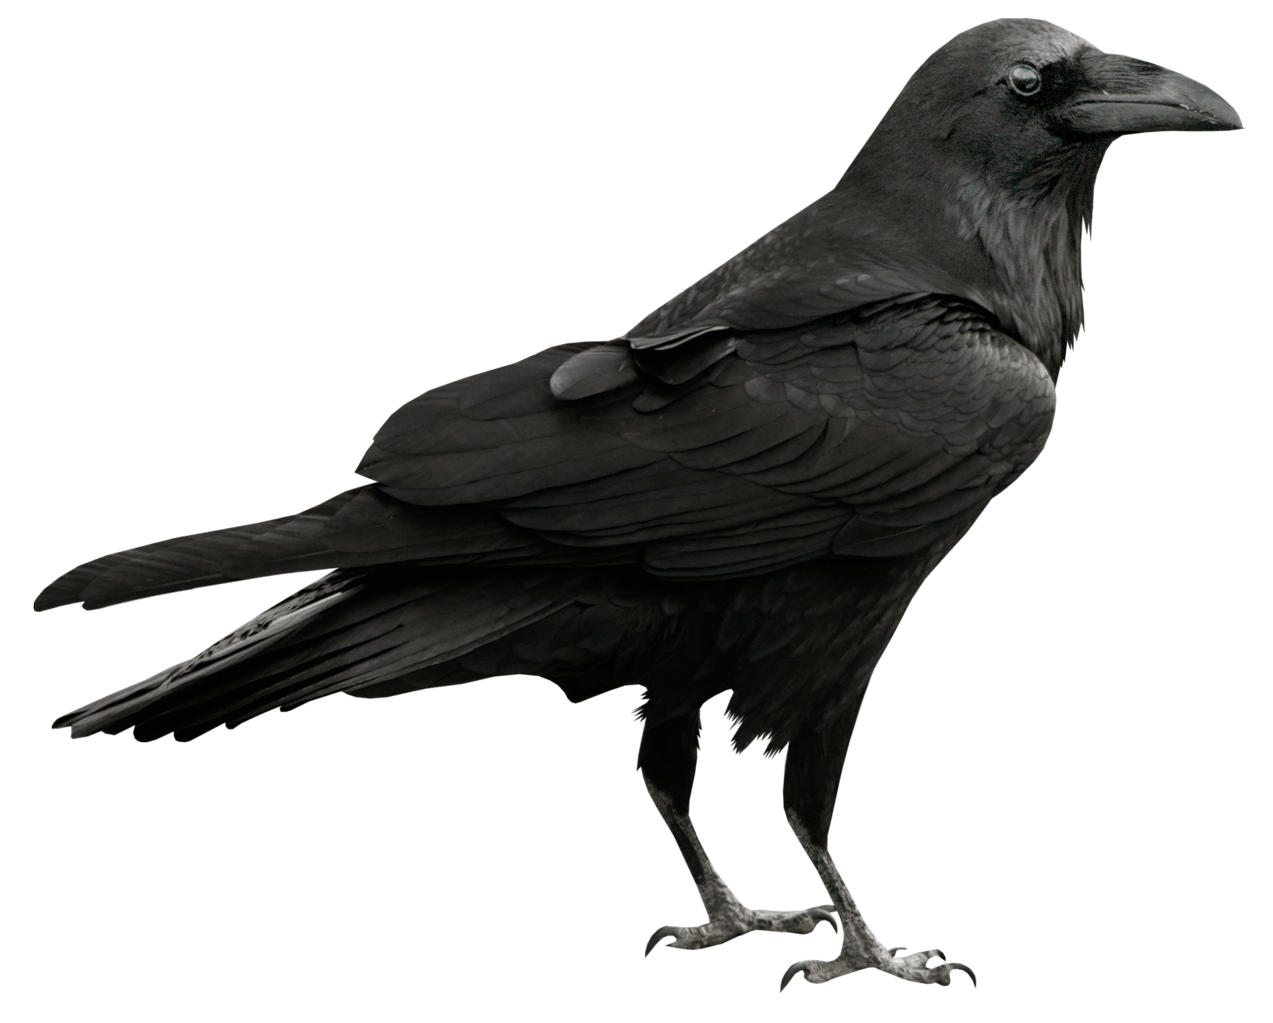 Halloween raven clipart image royalty free library Raven Transparent PNG Picture | Gallery Yopriceville - High-Quality ... image royalty free library